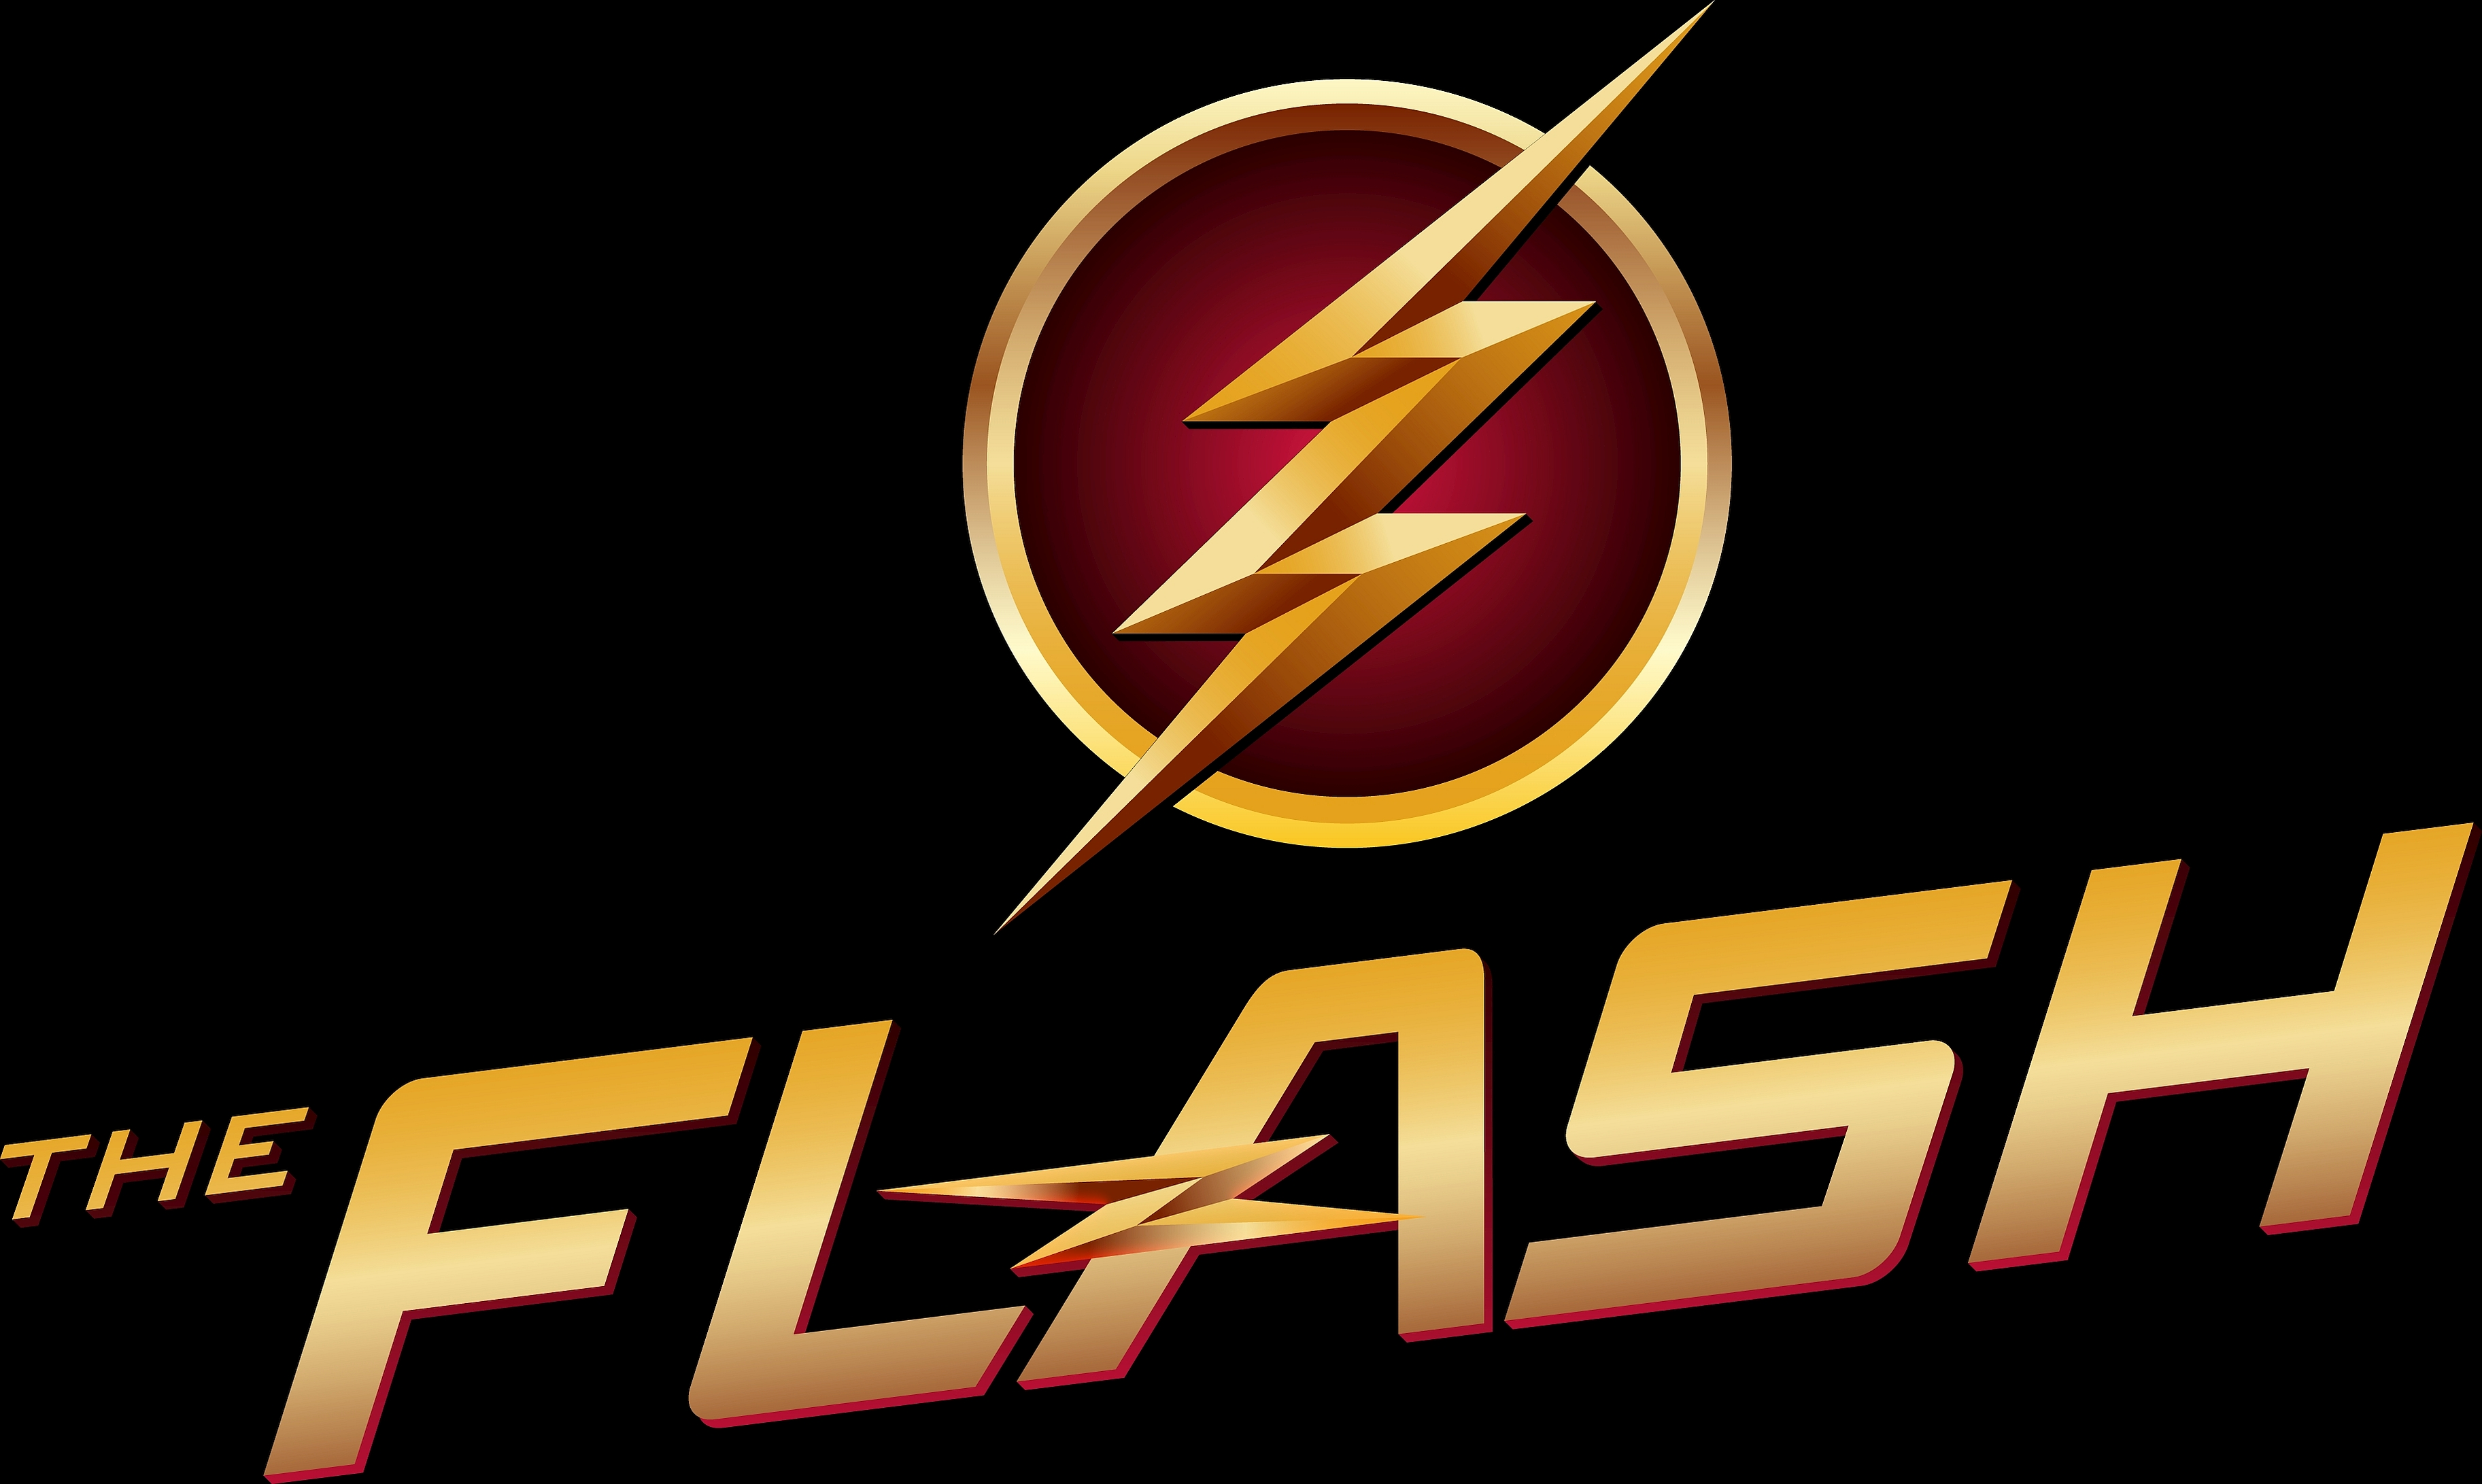 217 Flash Hd Wallpapers Background Images Wallpaper Abyss